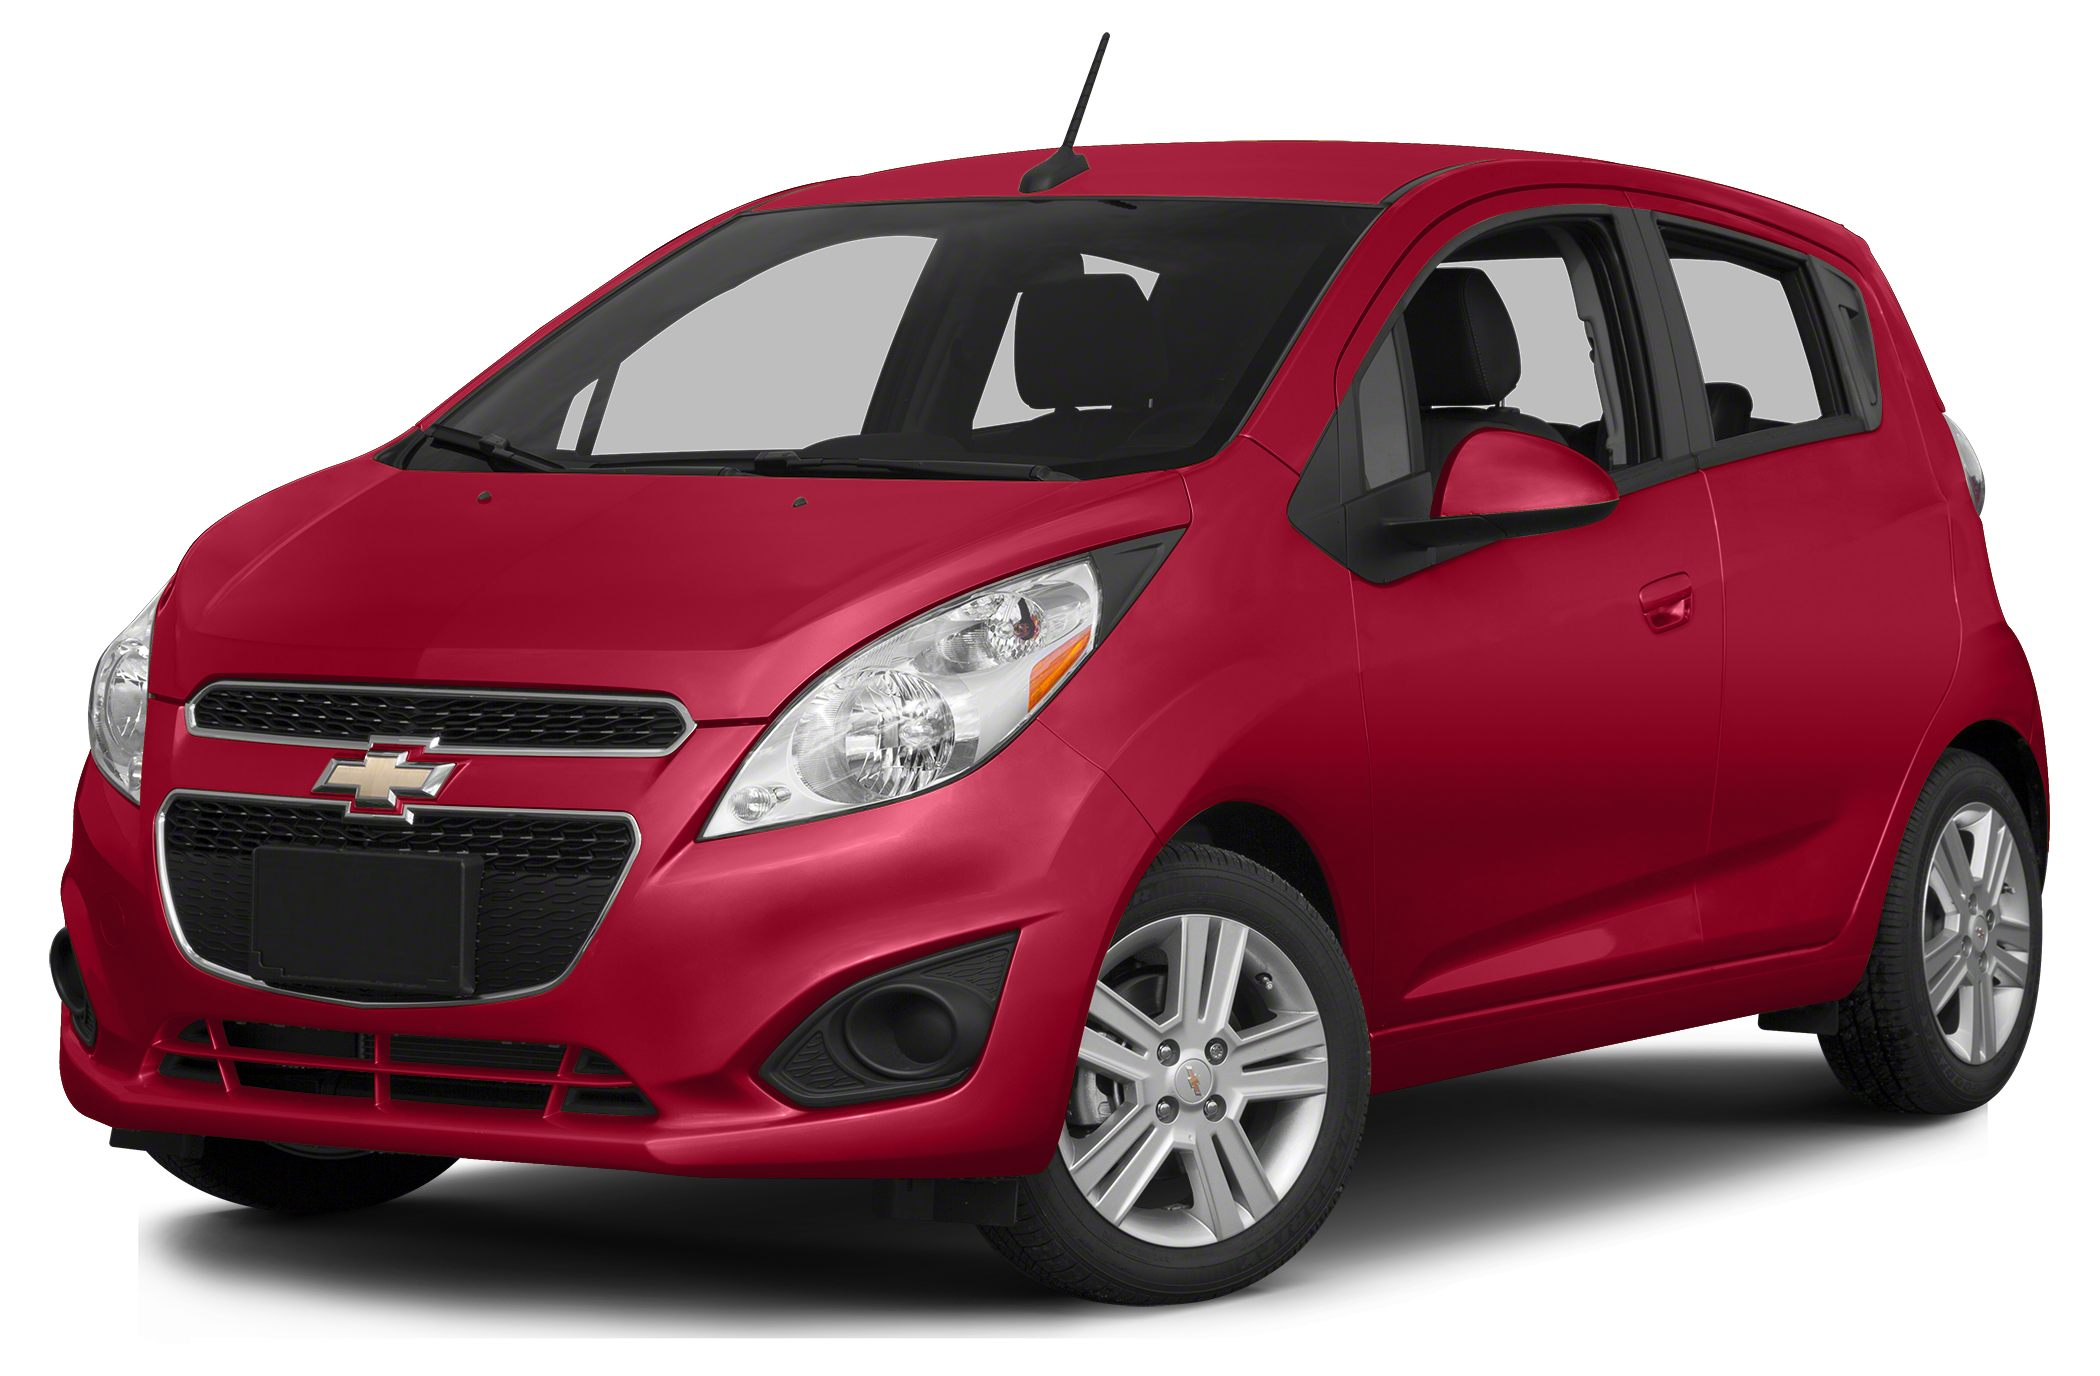 2015 Chevrolet Spark LT w1LT 2015 Chevrolet Spark 1LT in Salsa Red Come to the experts All the